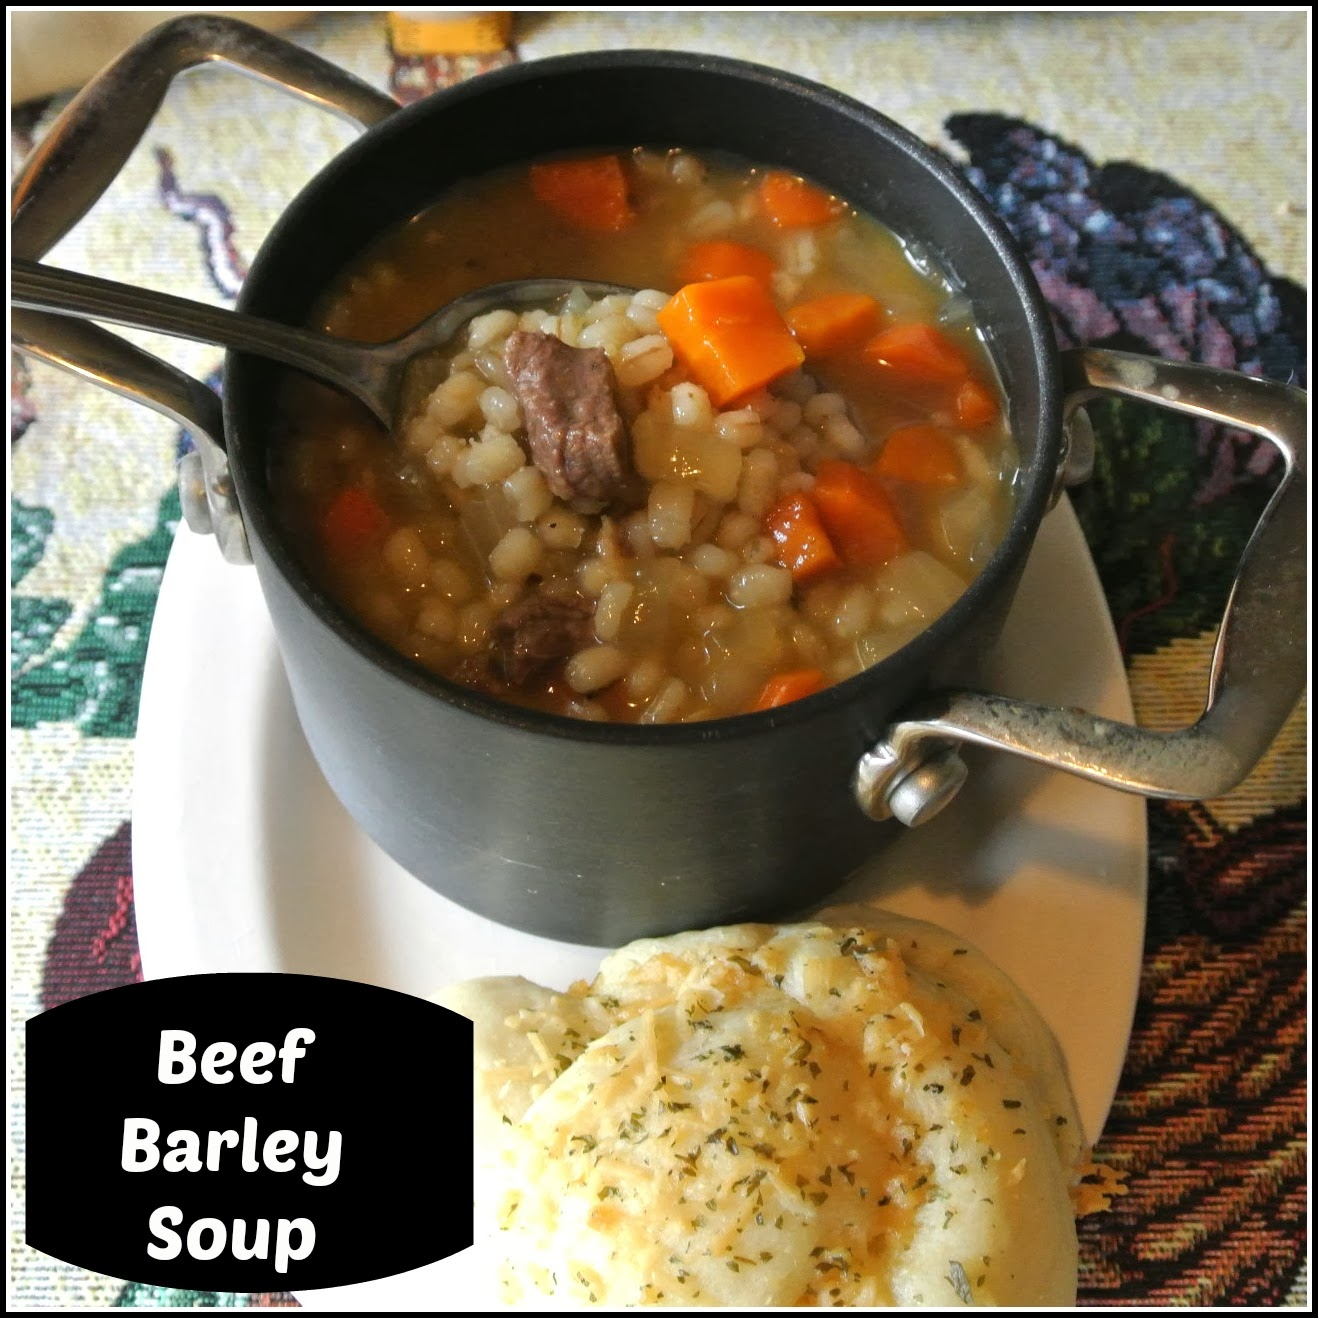 Gourmet Cooking For Two: Beef barley soup